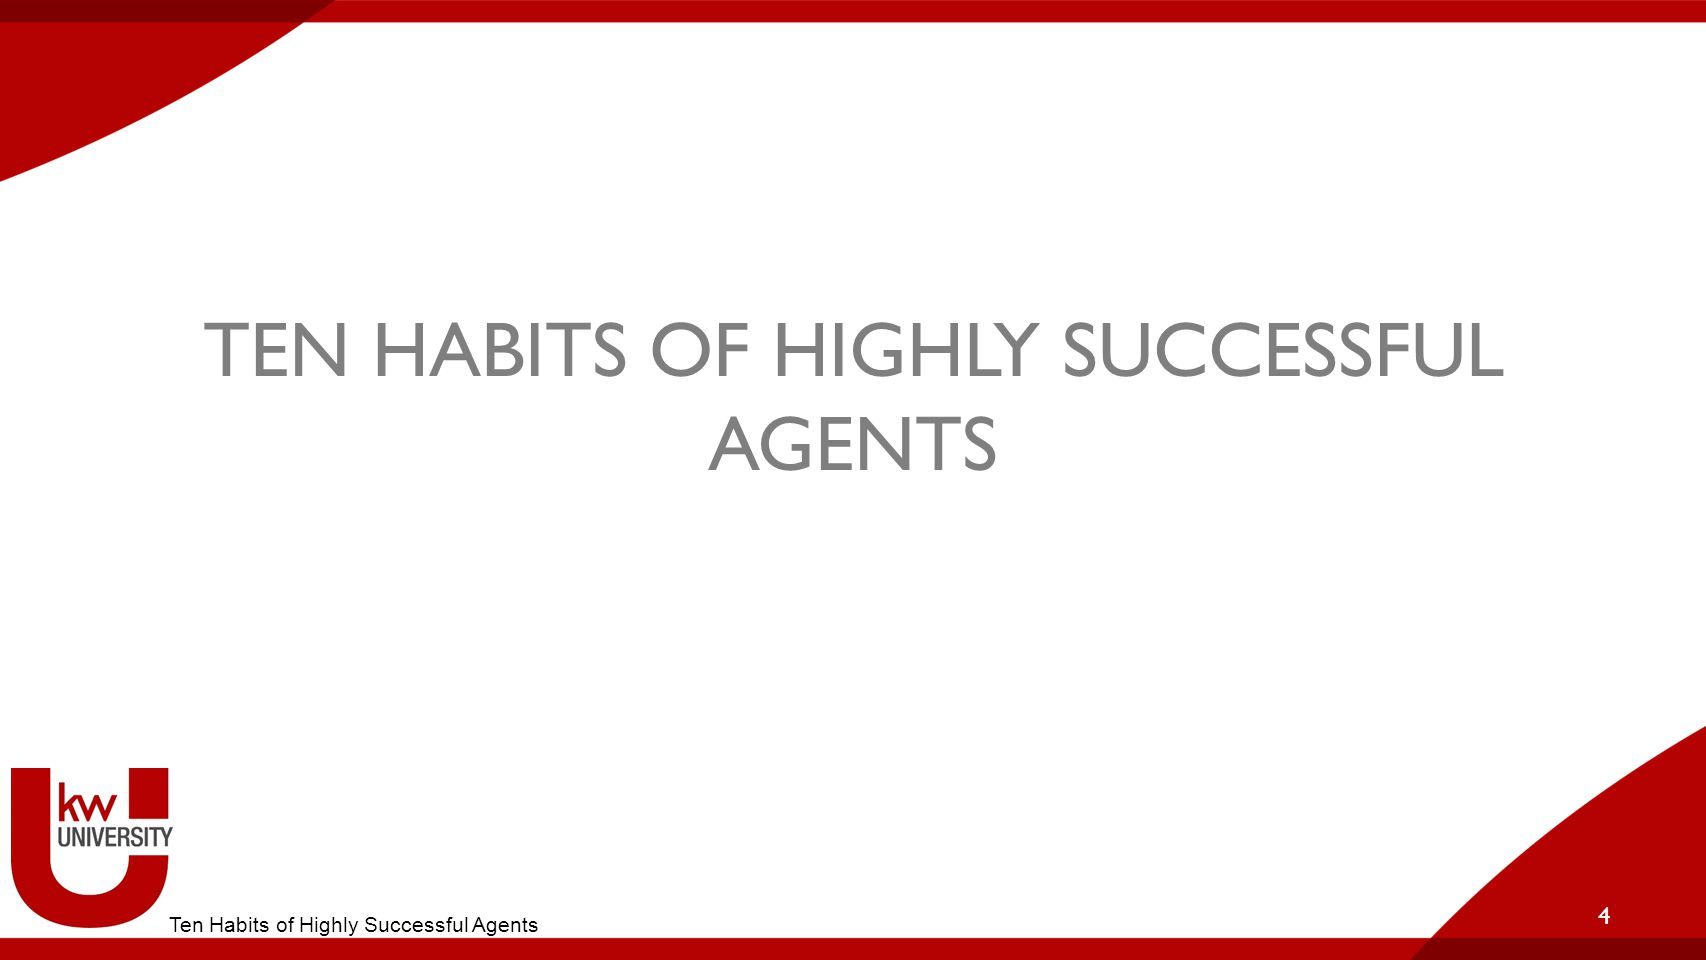 TEN HABITS OF HIGHLY SUCCESSFUL AGENTS